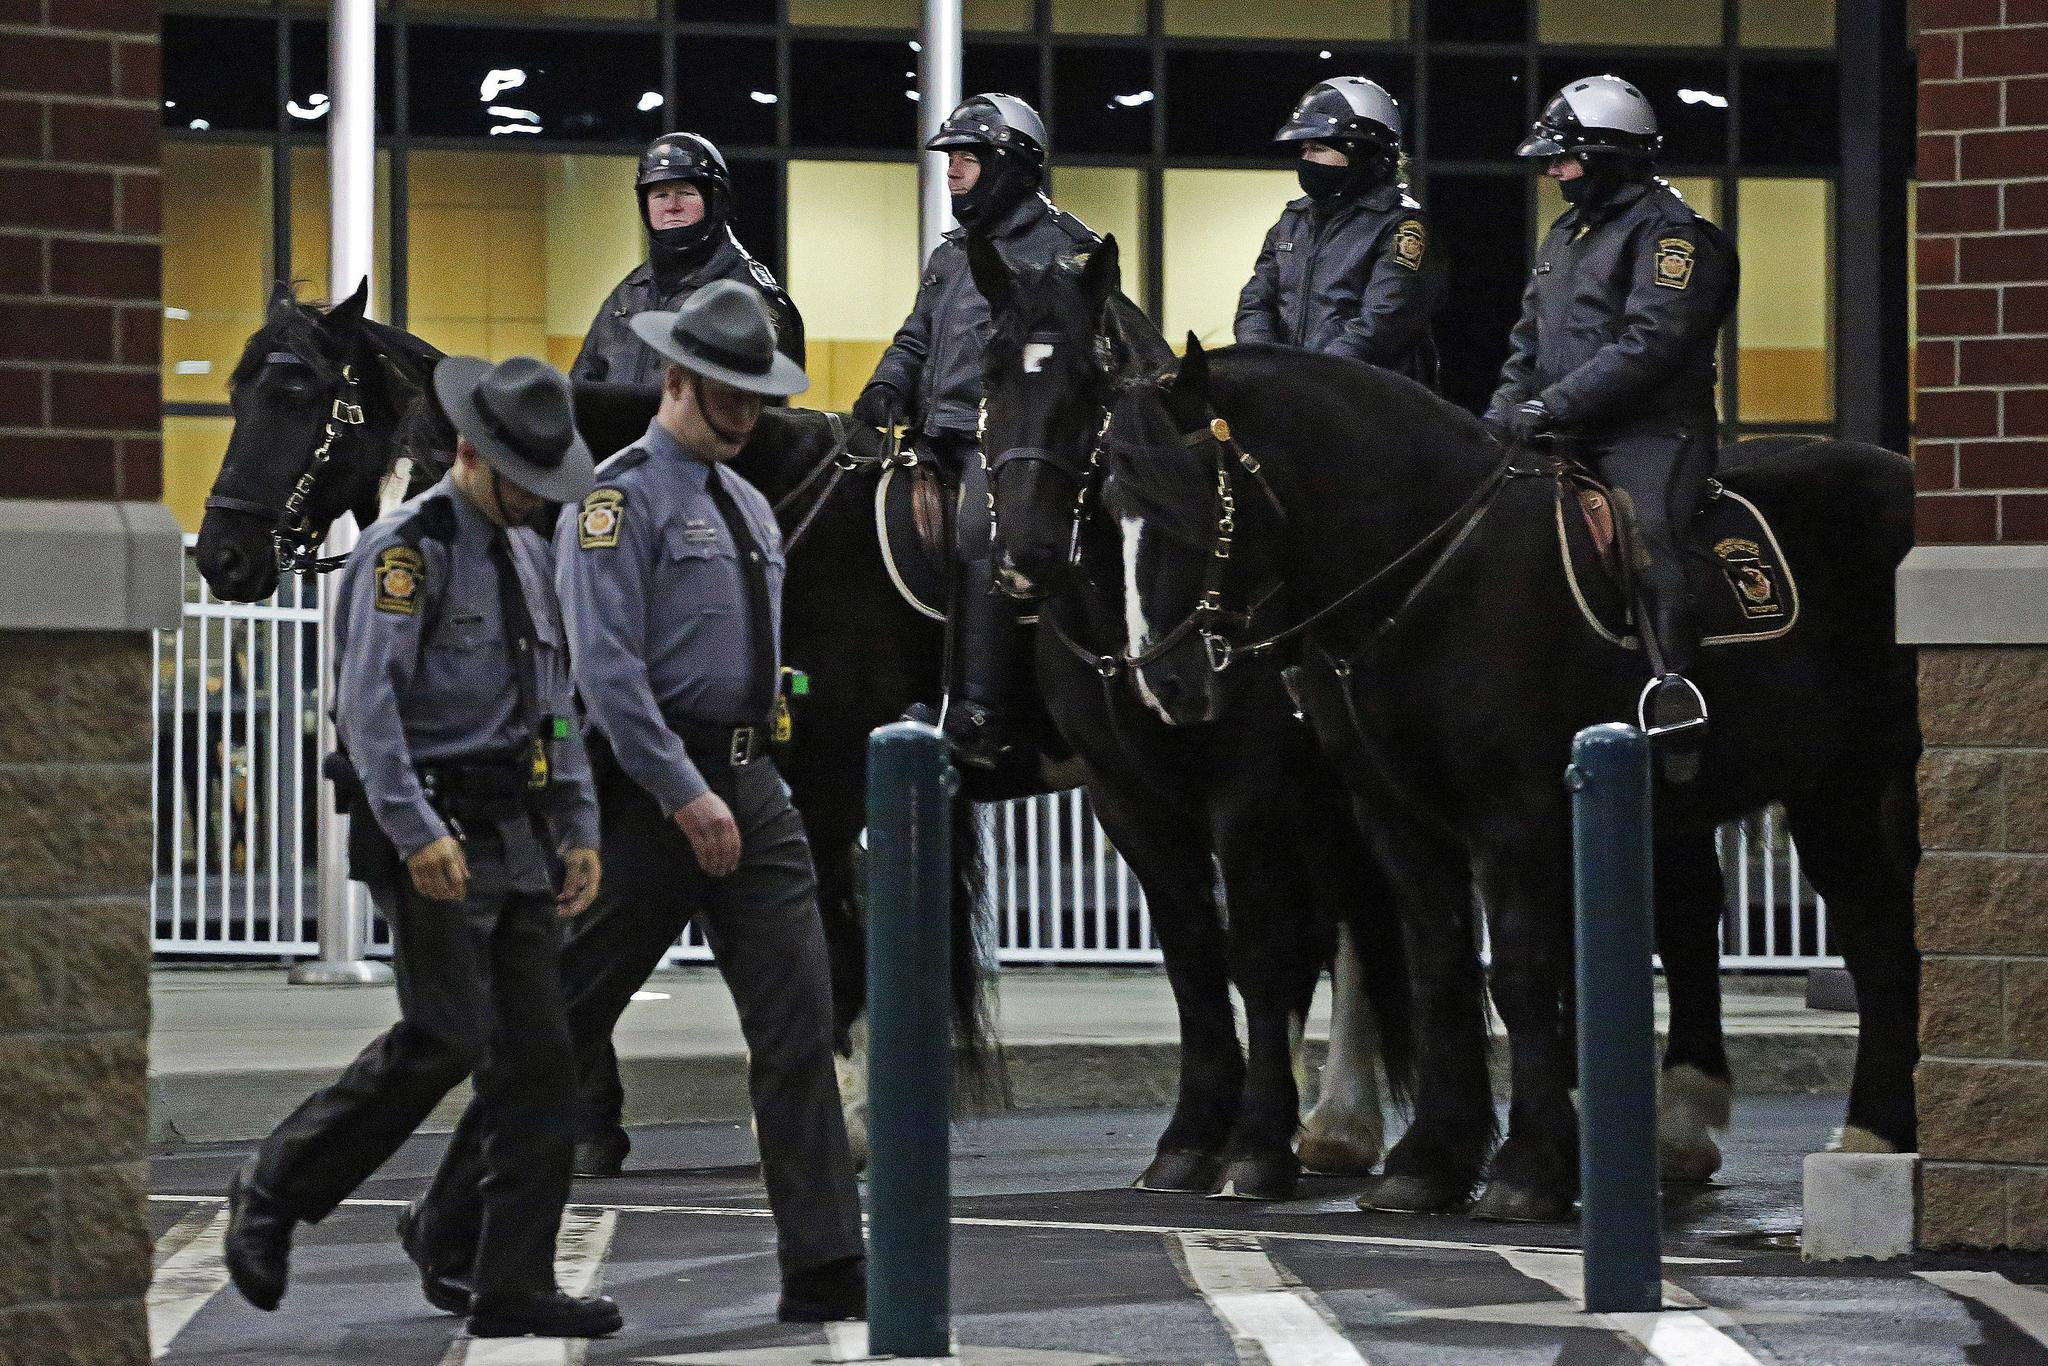 Analysis Wolf S State Police Fee Plan A Fraction Of Local